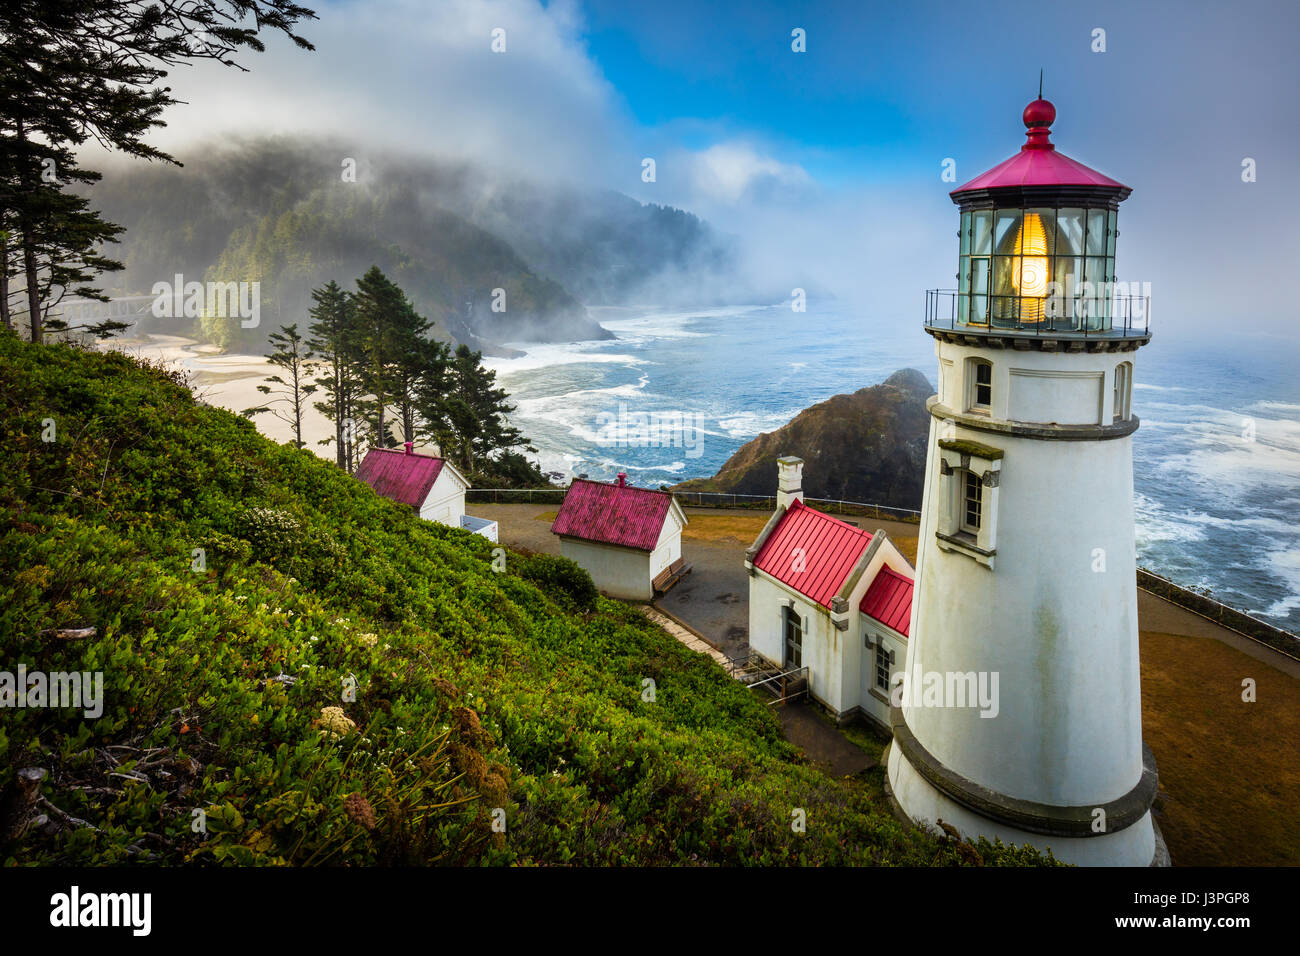 Heceta Head State Park (which includes Devils Elbow State Park) is located in a cove at the mouth of Cape Creek. - Stock Image